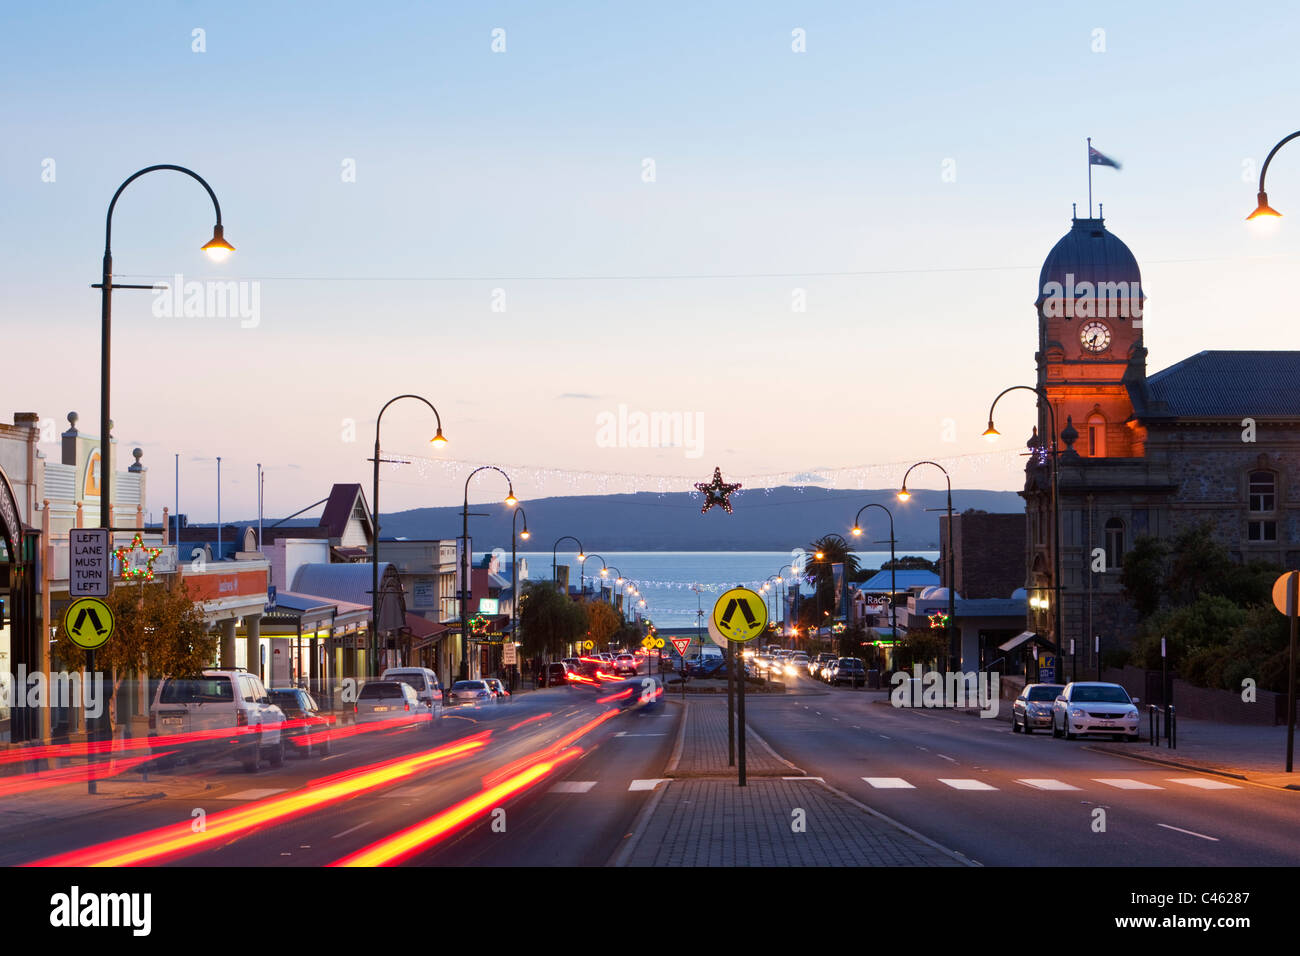 Études de bip20 - Page 8 View-of-town-hall-and-york-street-at-dusk-albany-western-australia-C46287